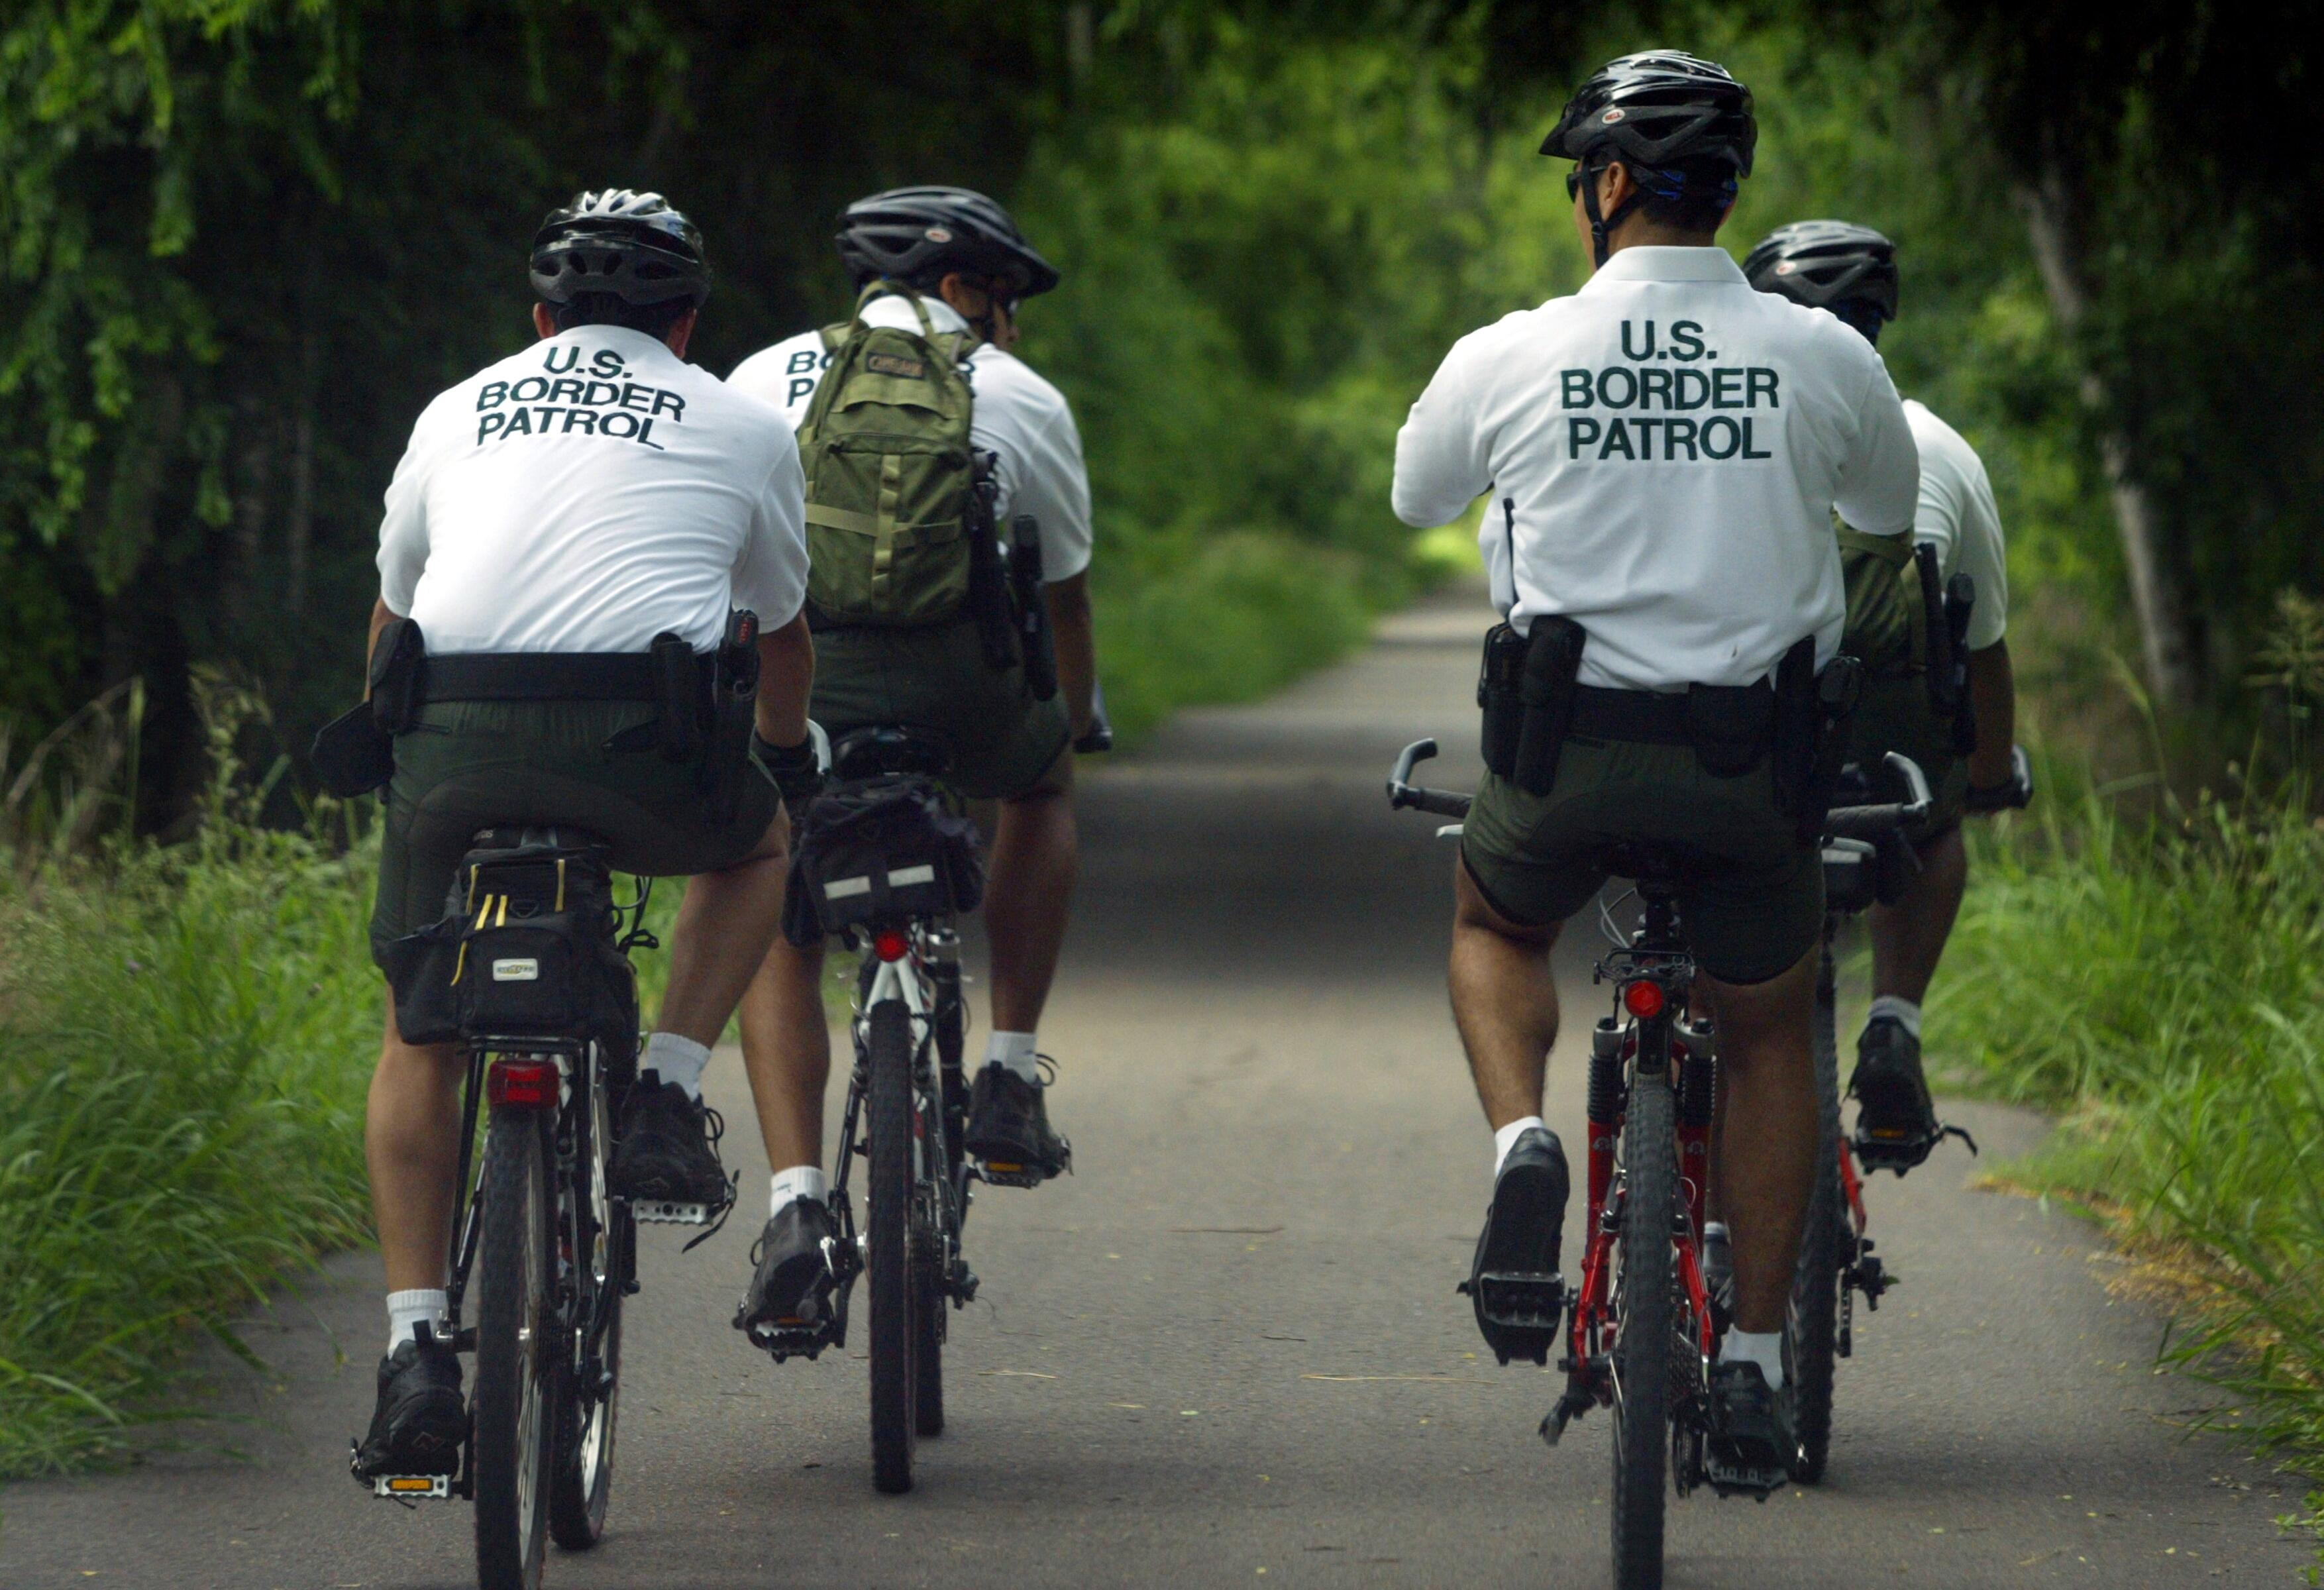 U.S. Border Patrol bicycle unit on patrol in McAllen, Texas.